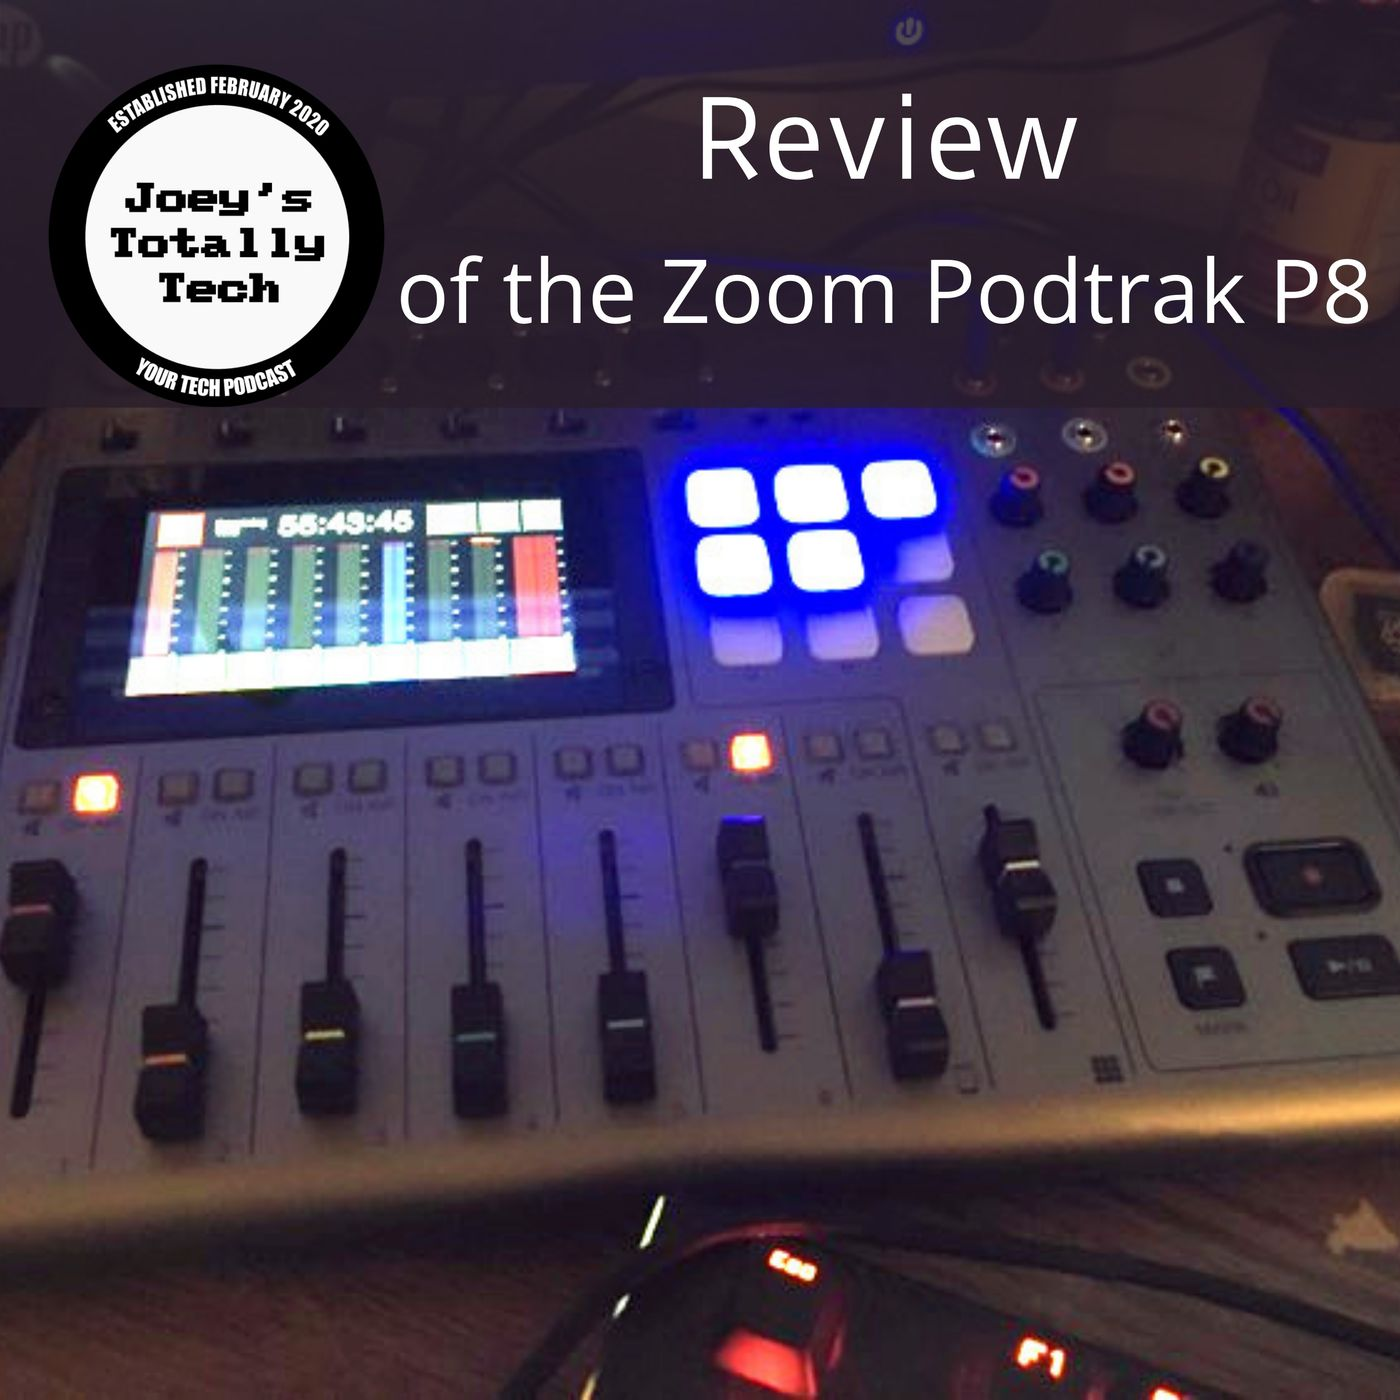 Review of the Zoom Podtrak P8